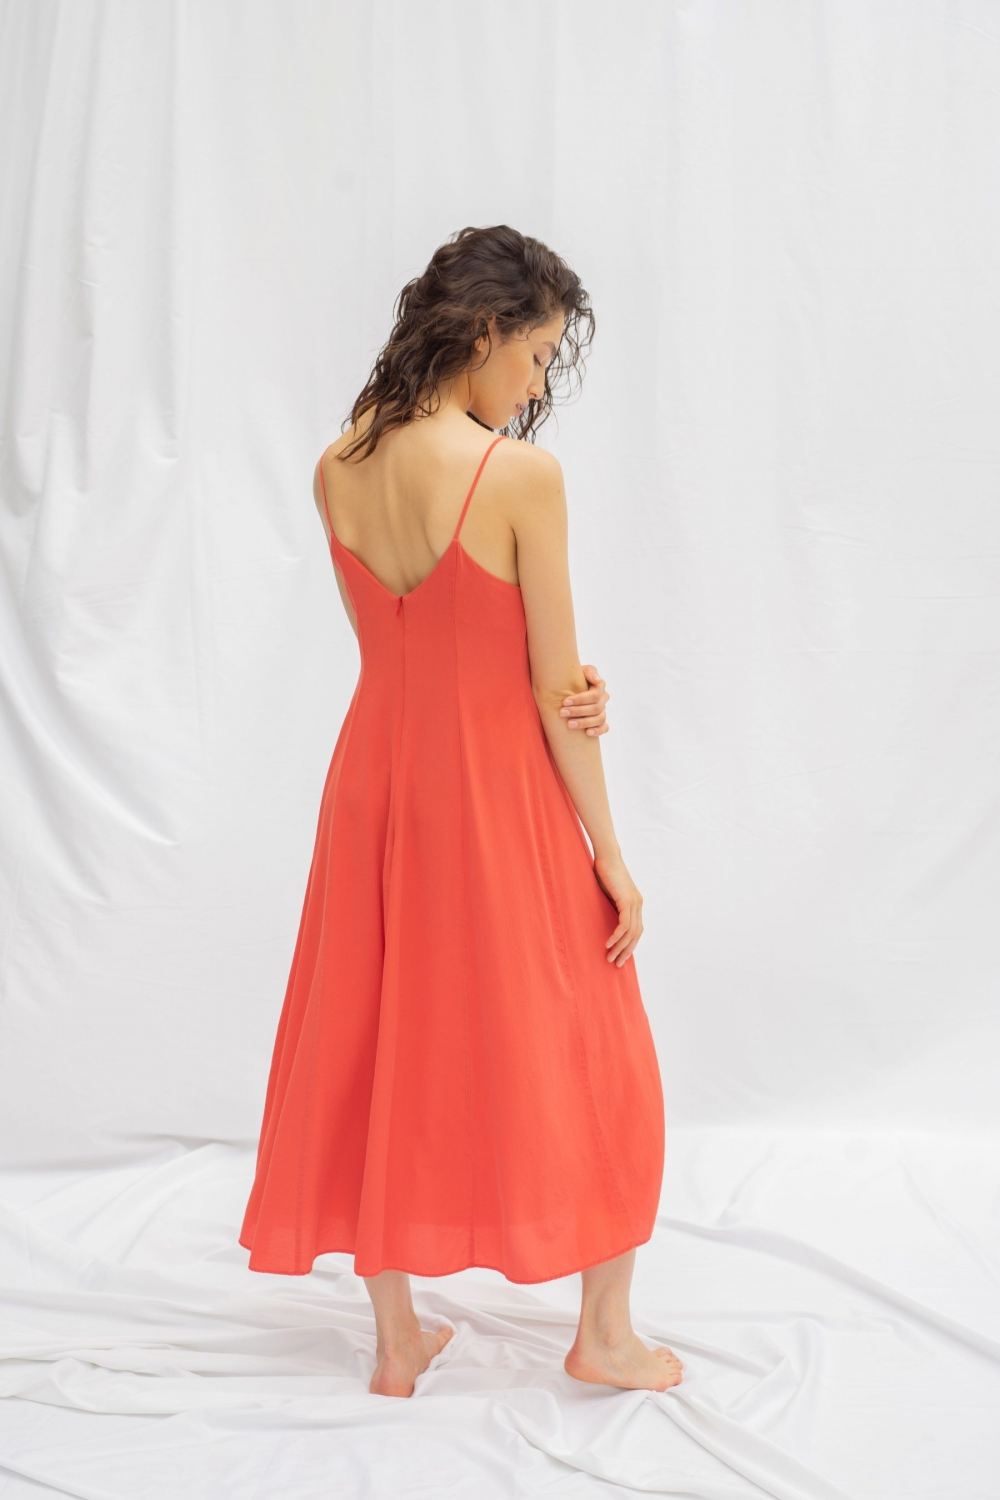 ISABELLA DRESS IN CORAL RED